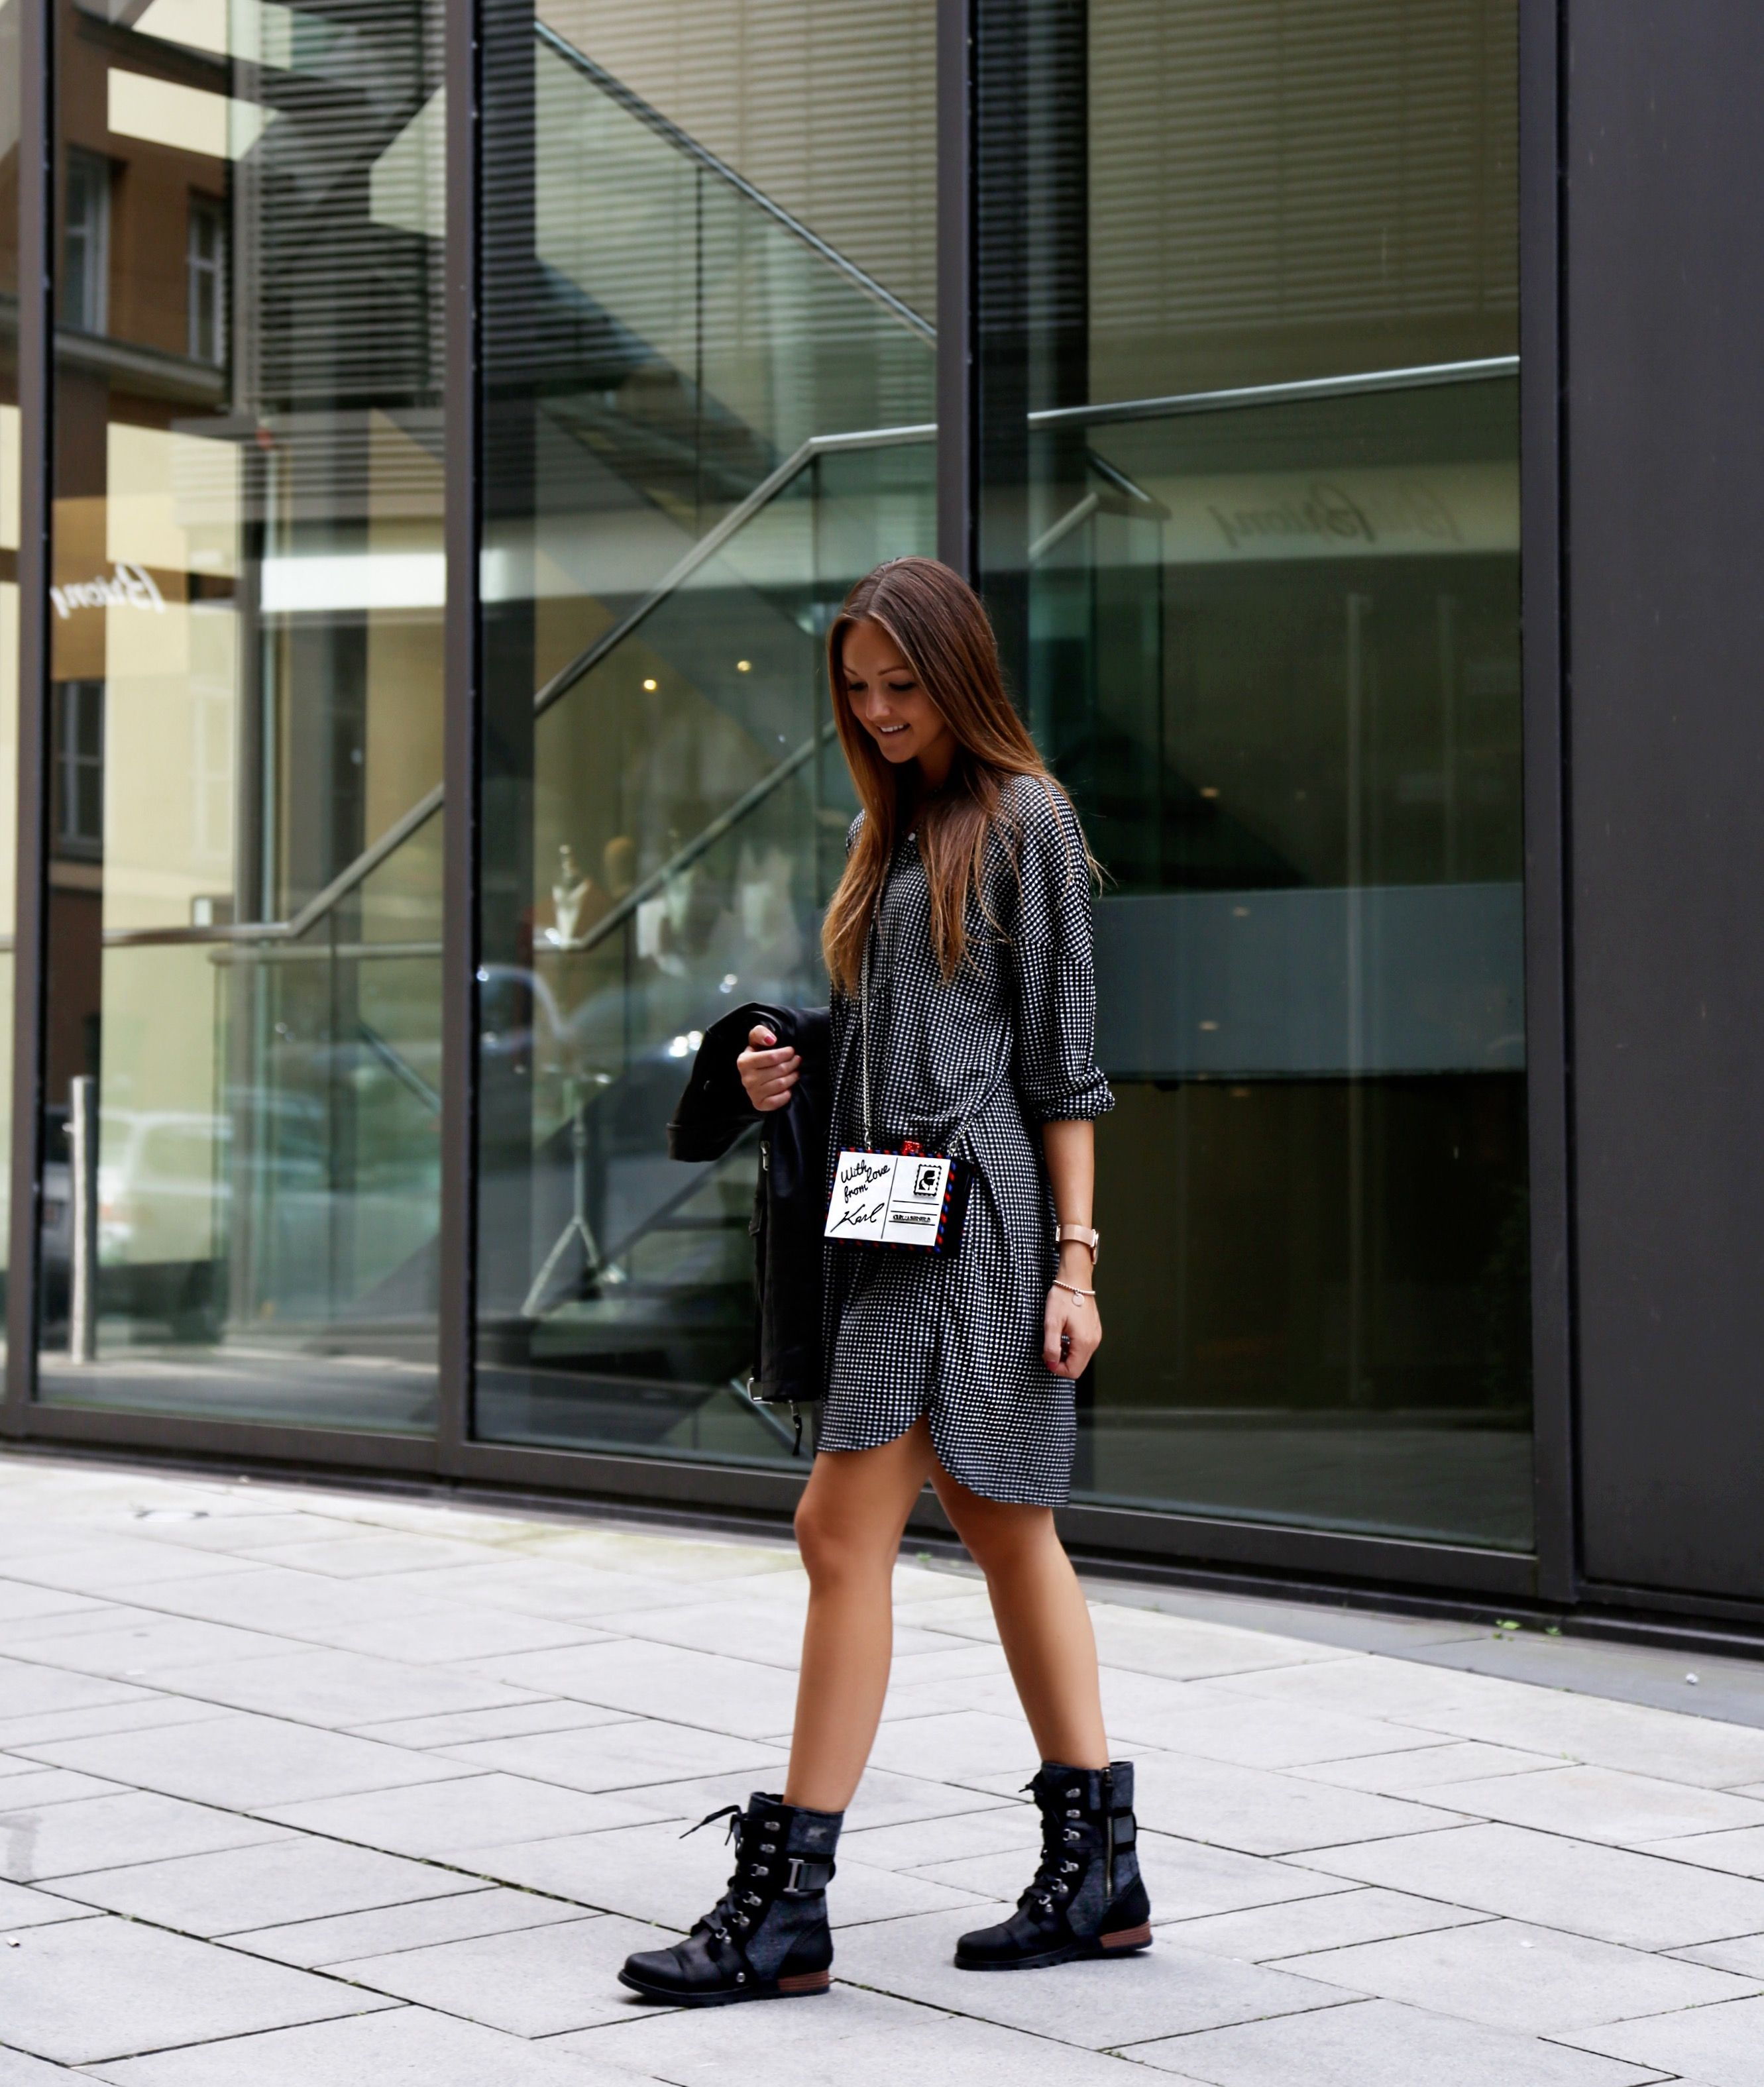 Get the perfect City Look